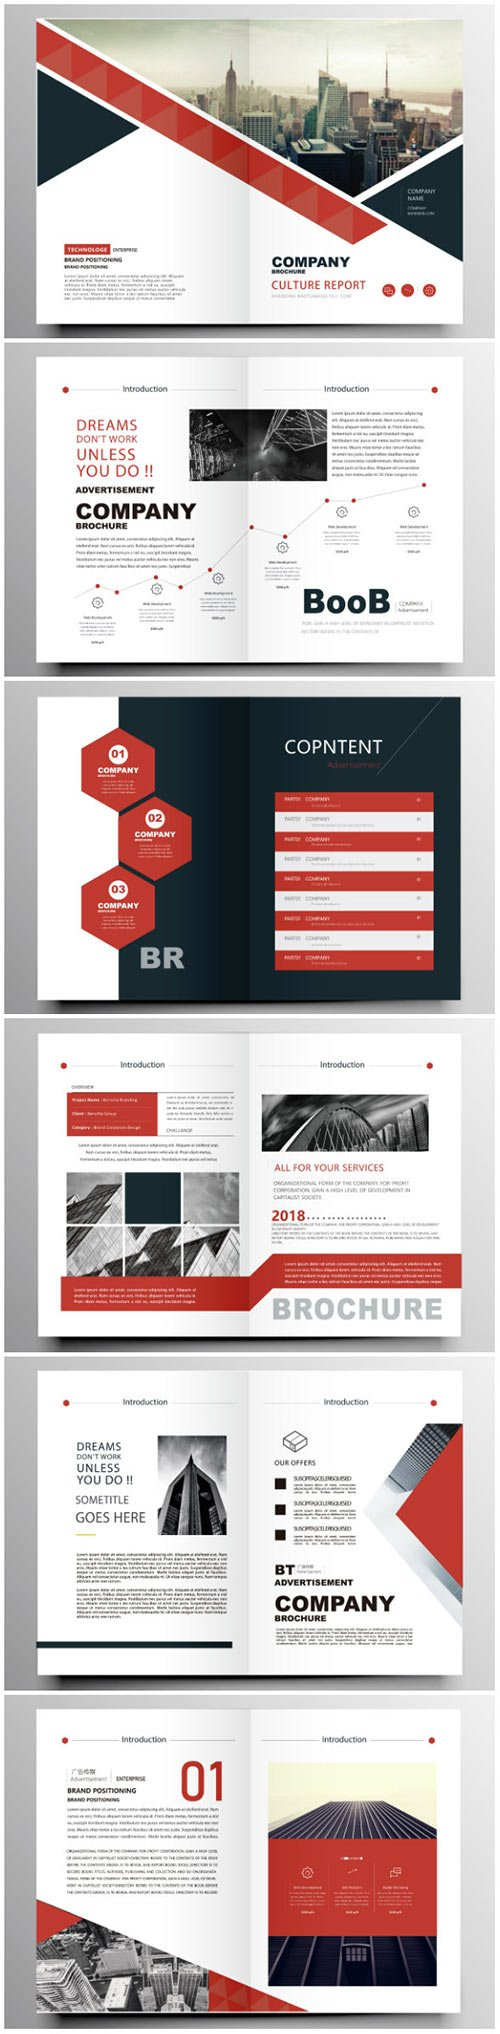 Brochure template vector layout design, corporate business annual report, magazine, flyer mockup # 199